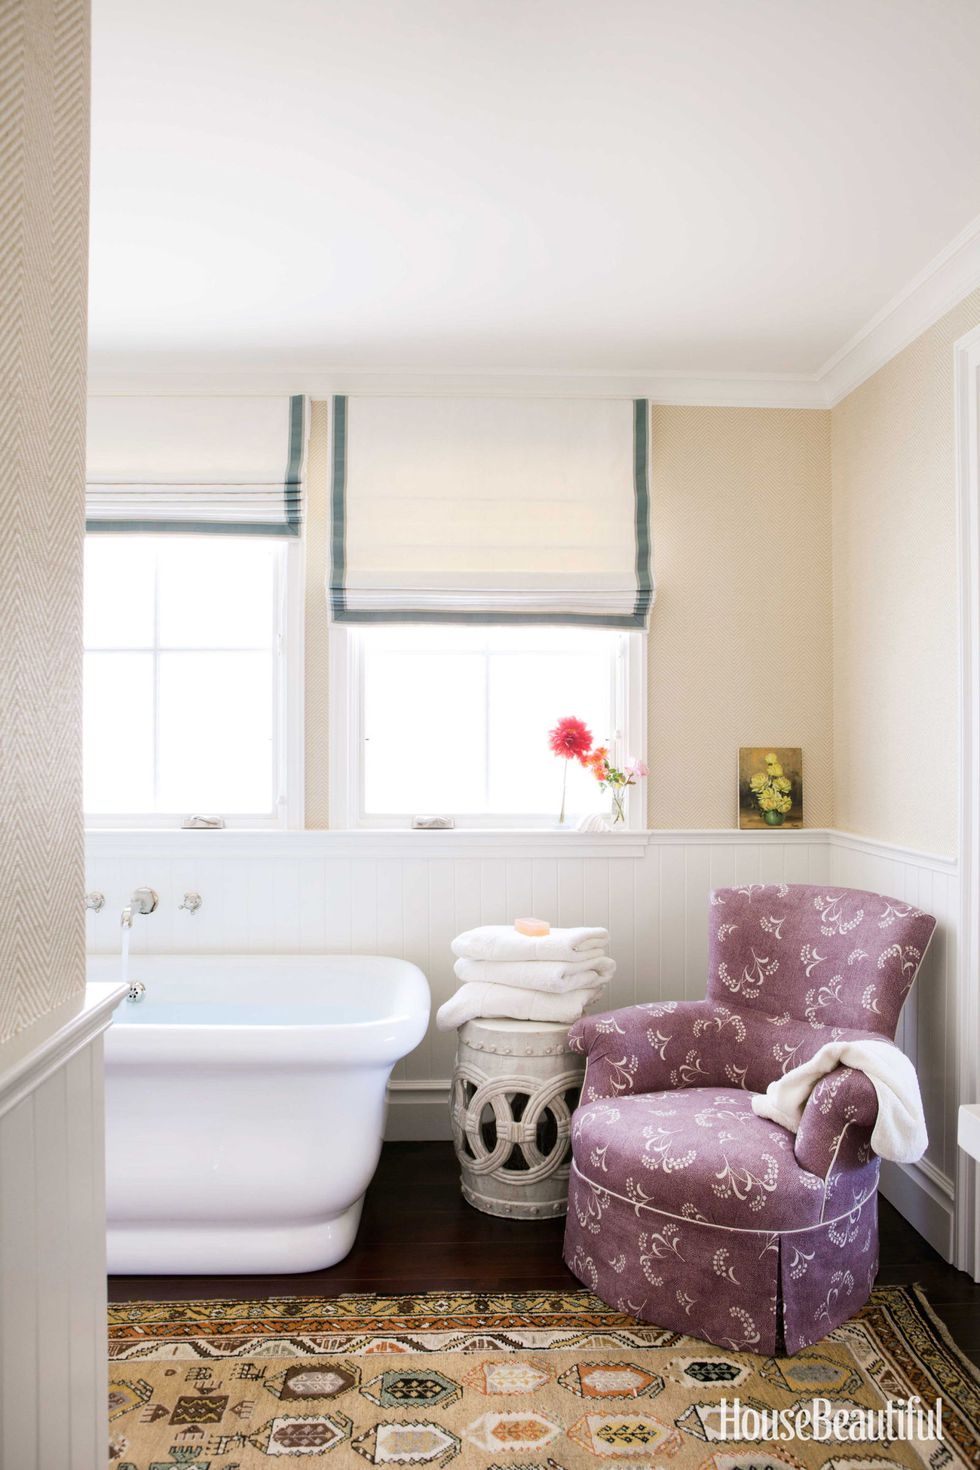 Bathroom   An armchair, a ceramic stool, an aged Persian rug, wallpaper, and Roman shades create a sitting room atmosphere in Susan Croul's bathroom. Dunham's KP Armchair in Carolina Irving Mimosa Vine, from  Hollywood at Home .  Ralph Lauren  herringbone wallpaper.